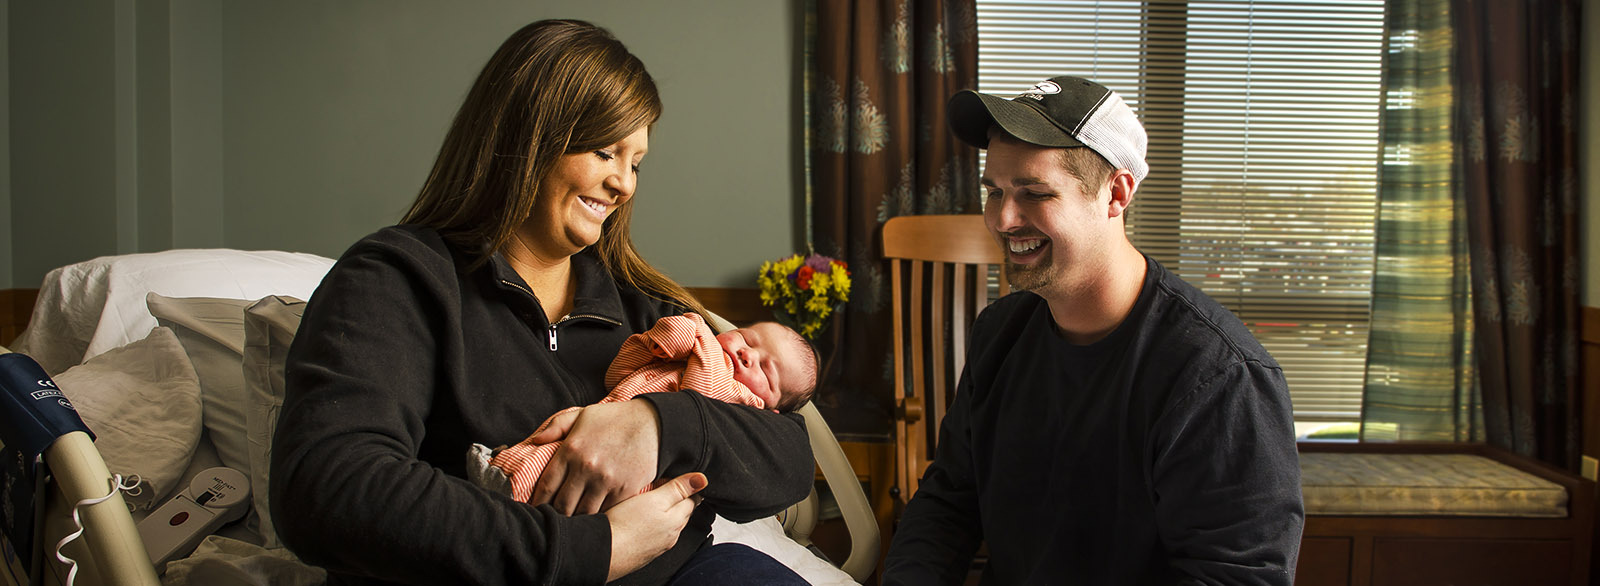 New mother holding her baby with husband nearby in the Birthing Center at Columbus Regional Health.